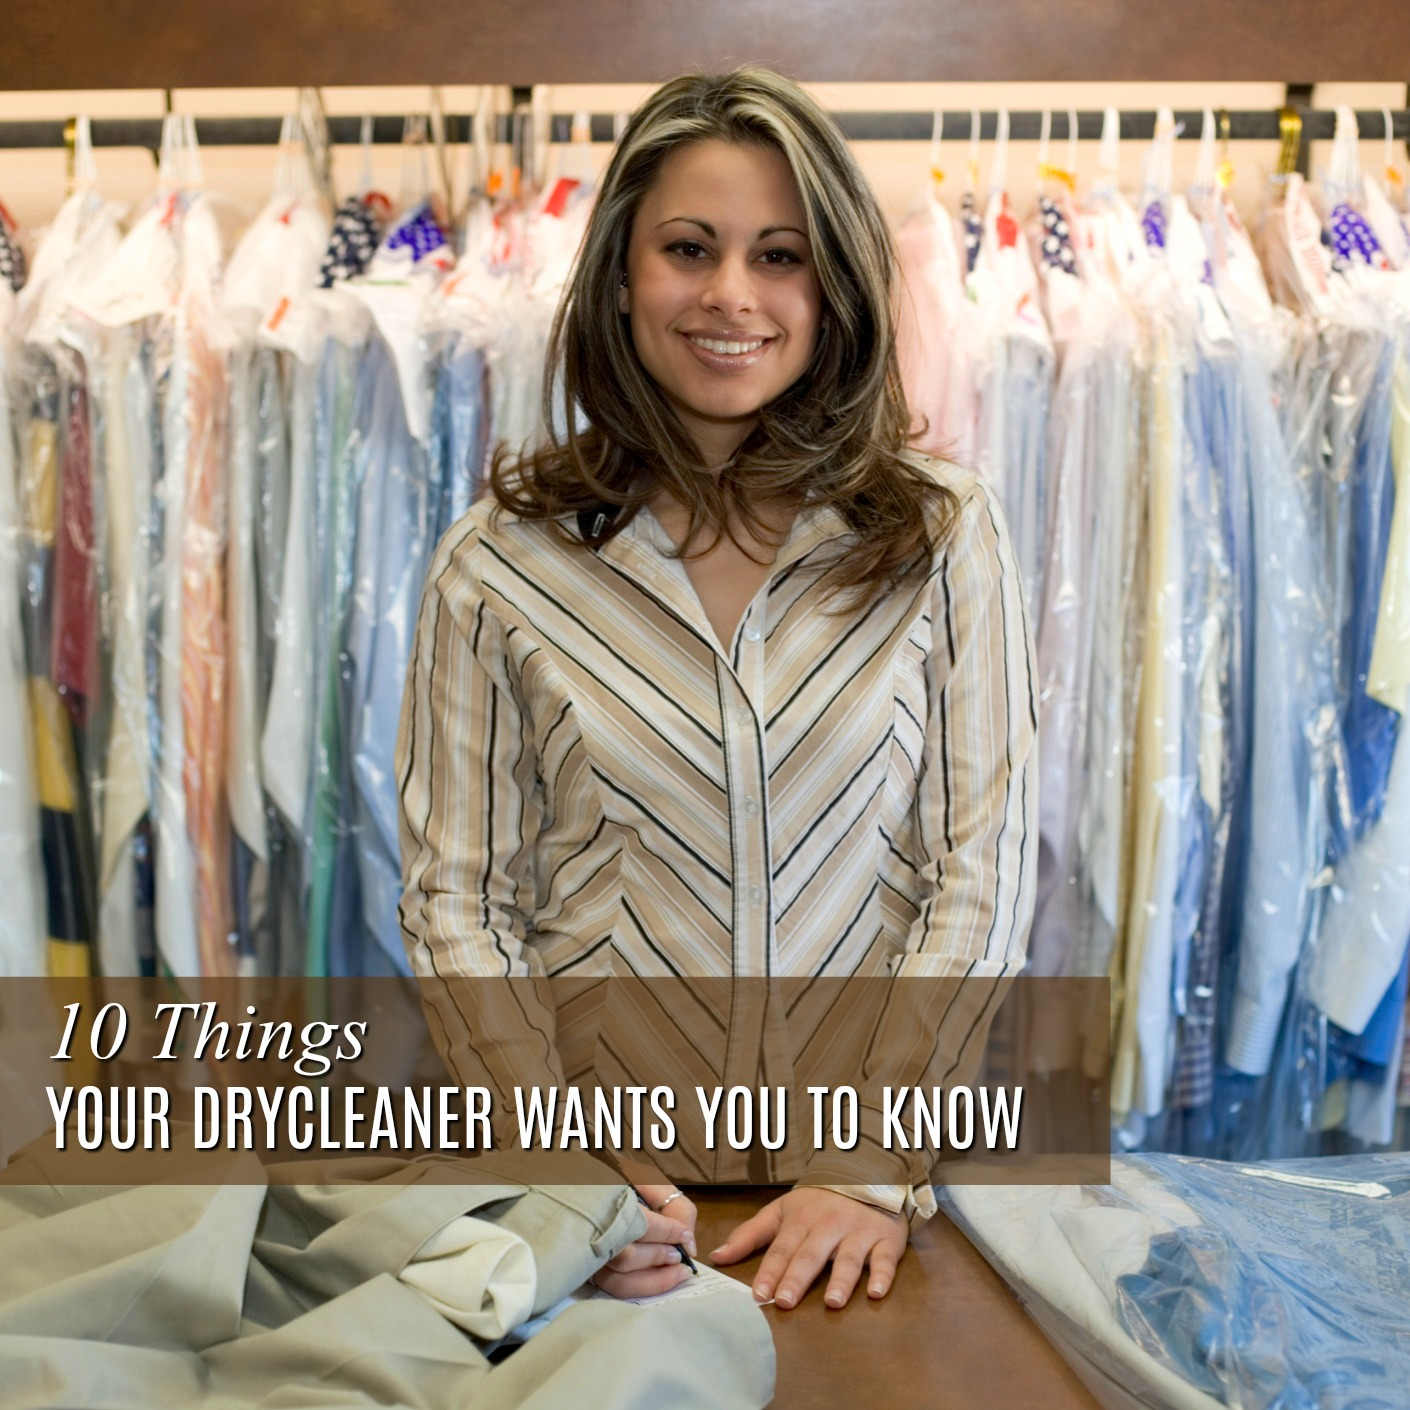 7 Things Your Dry Cleaner Wants You to Know